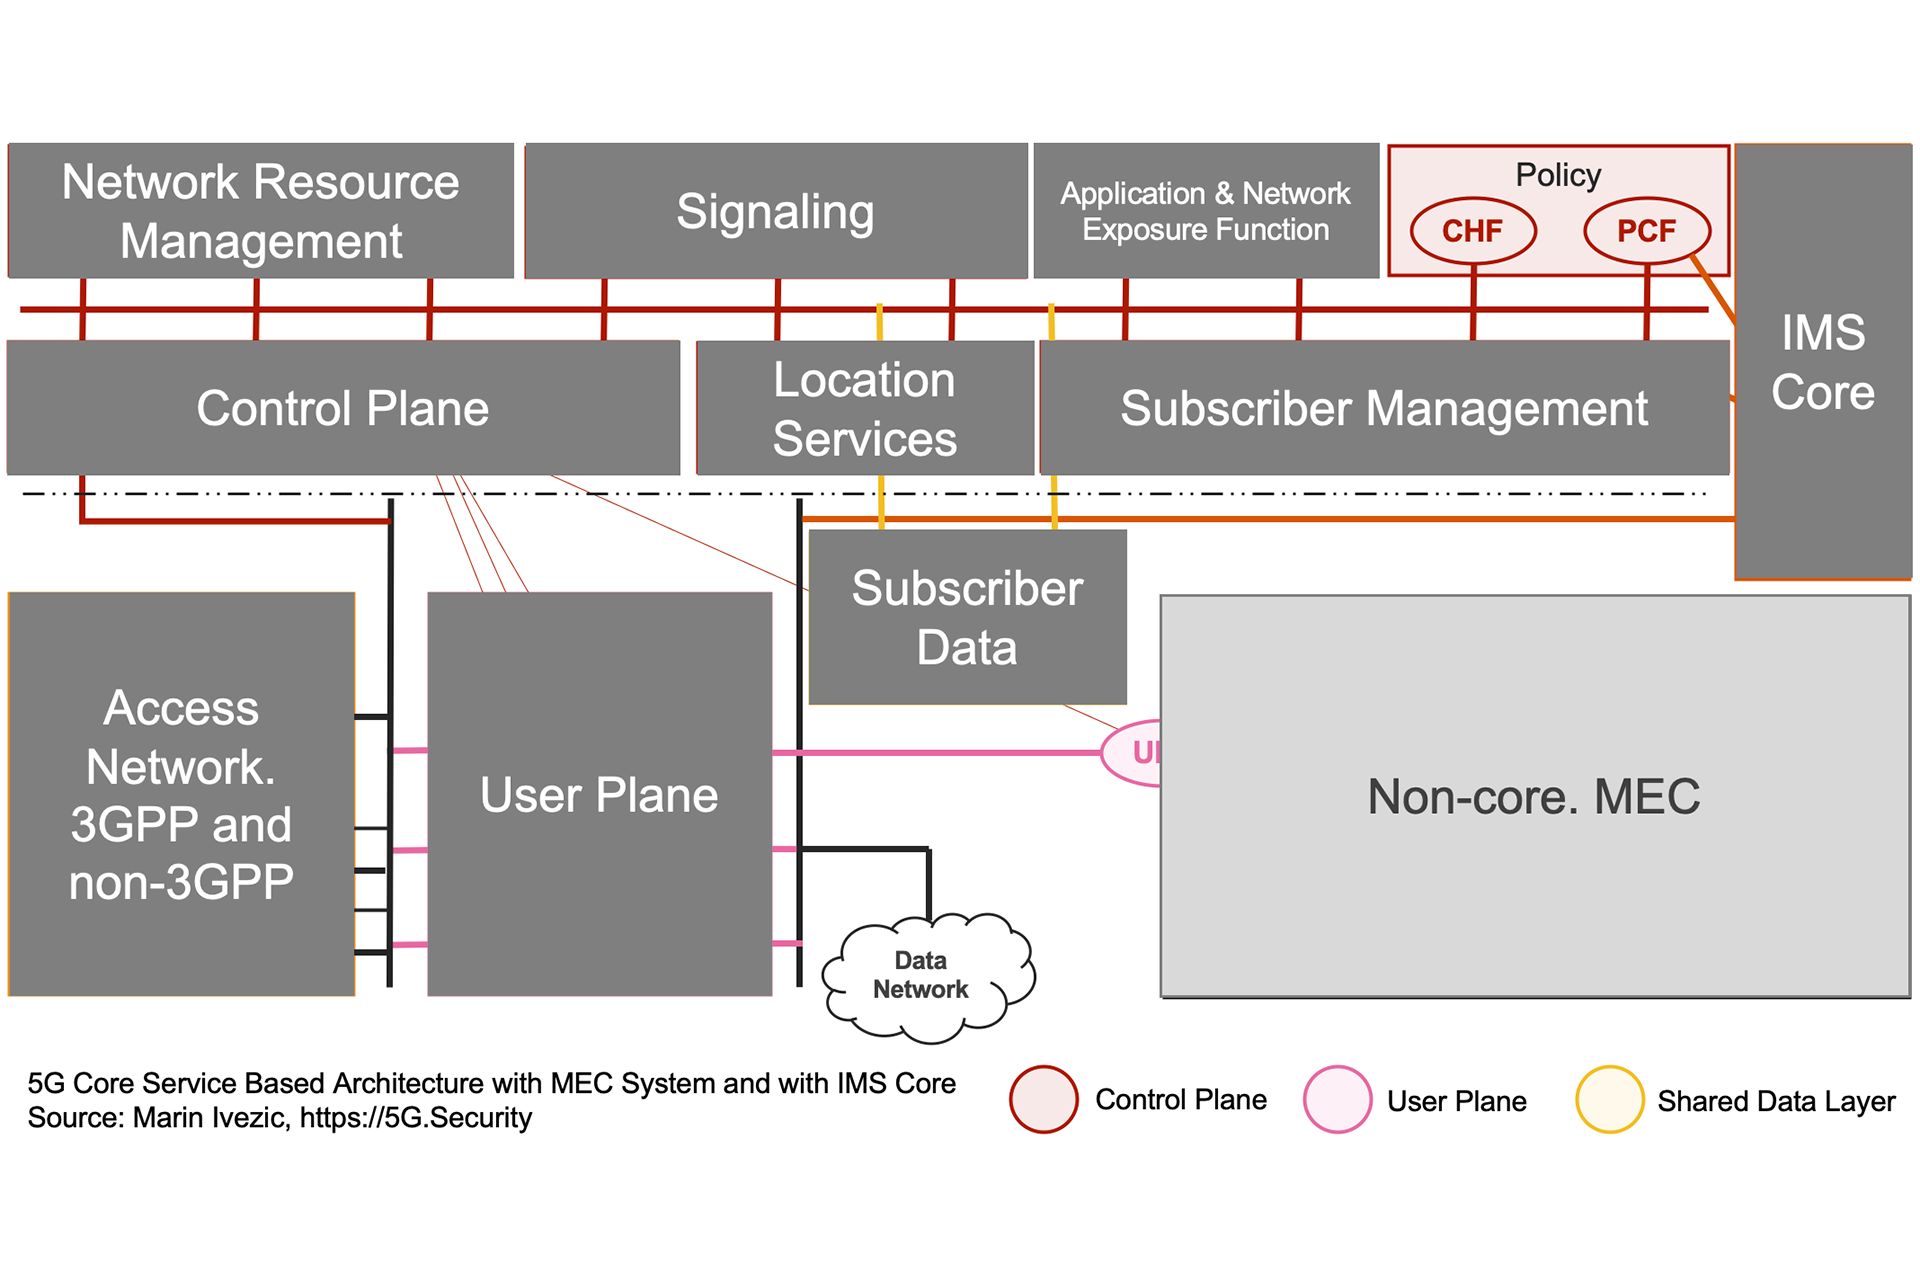 5G SBA IMS MEC Architecture - Policy